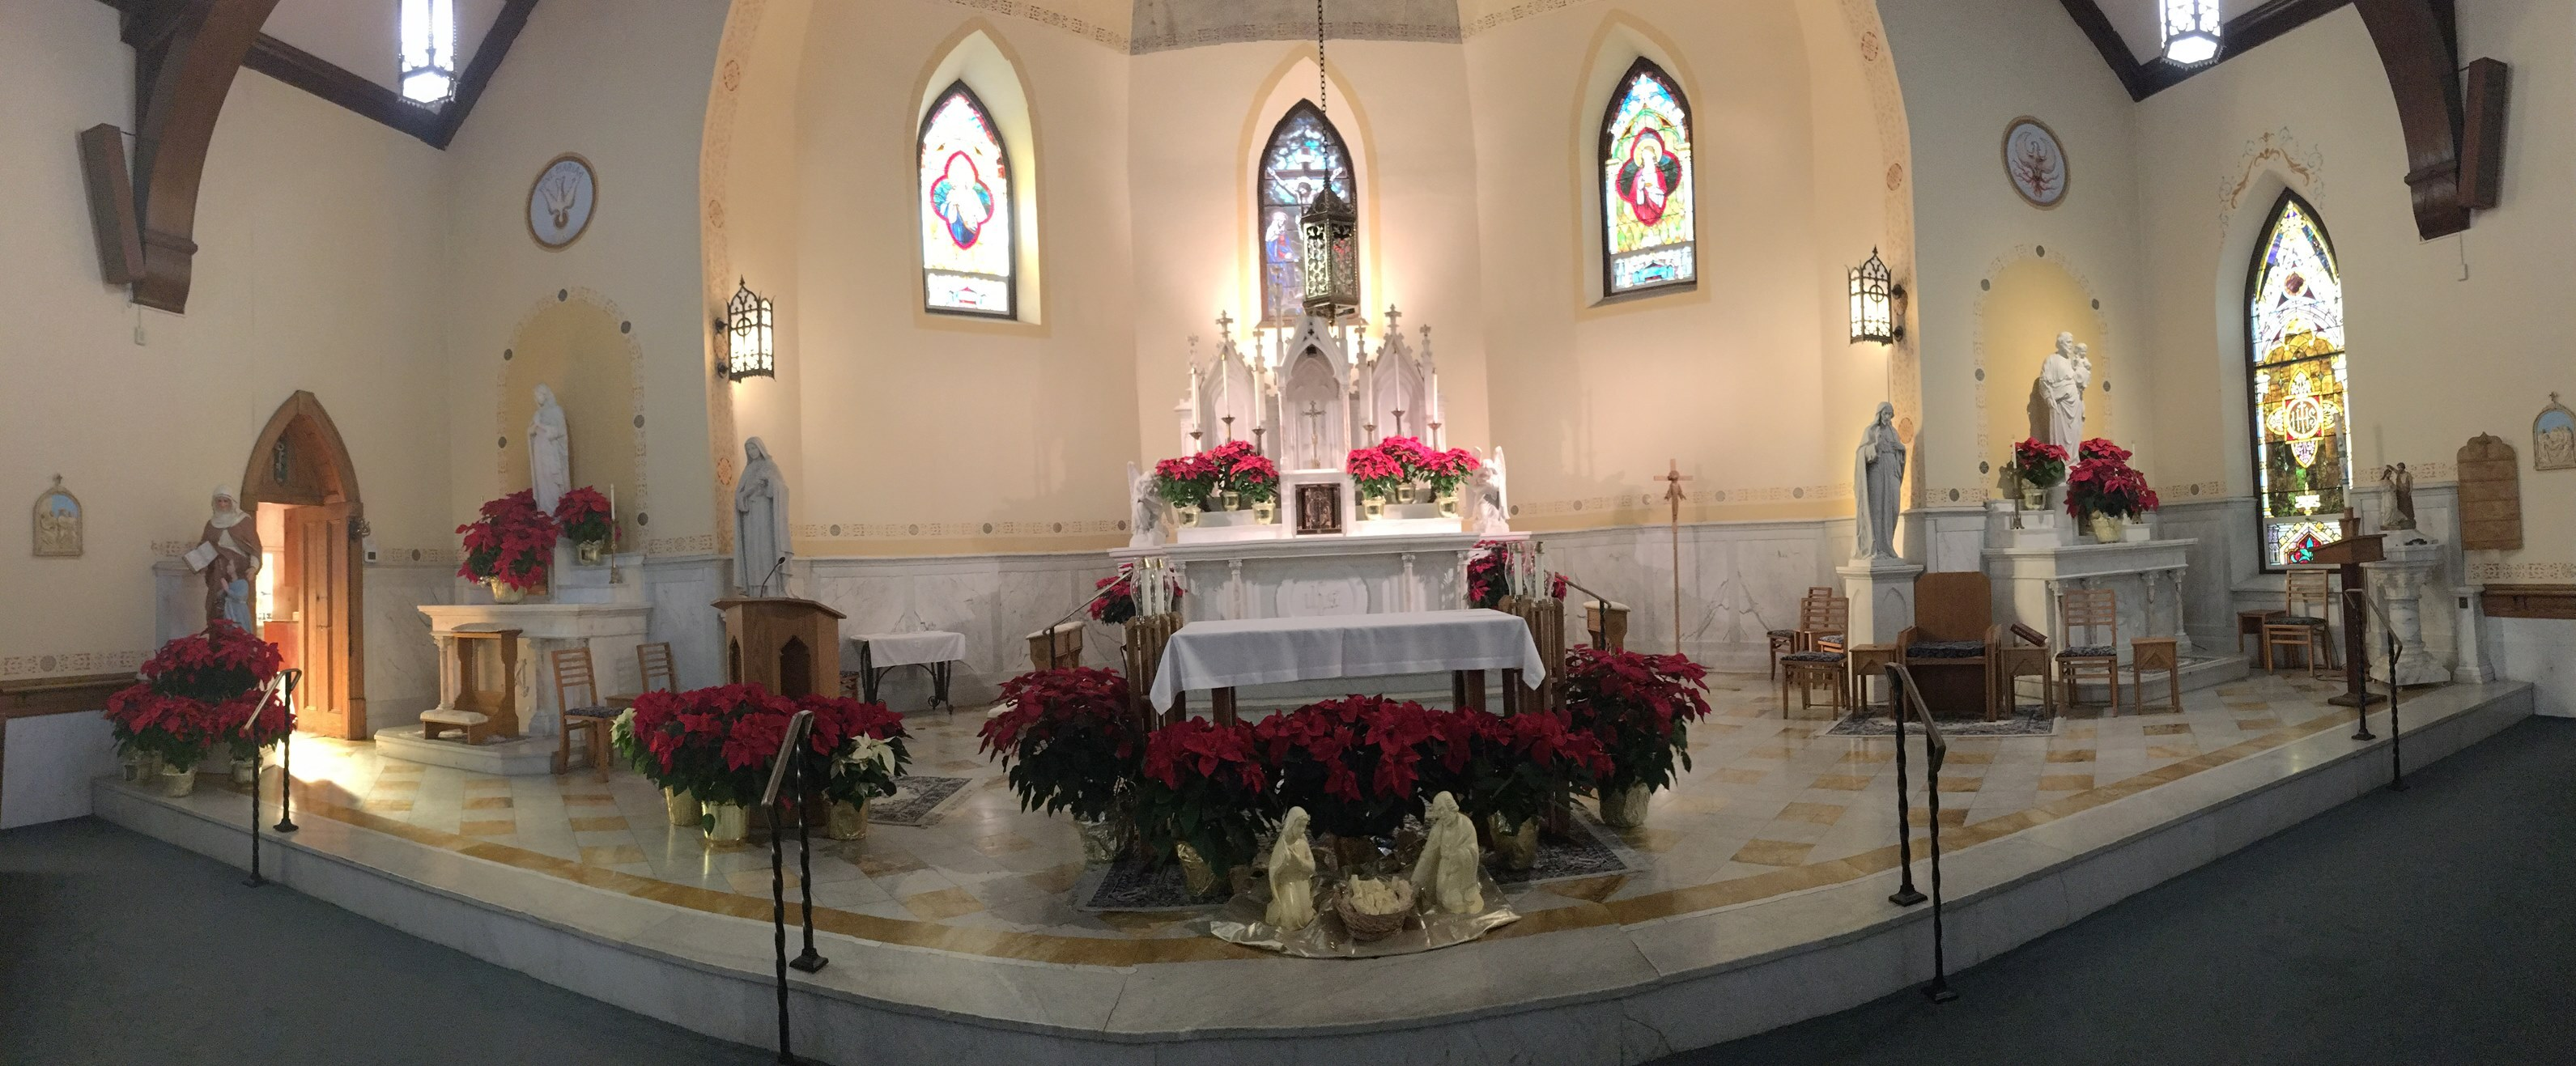 Fish-eye view of the altar at Christmastime